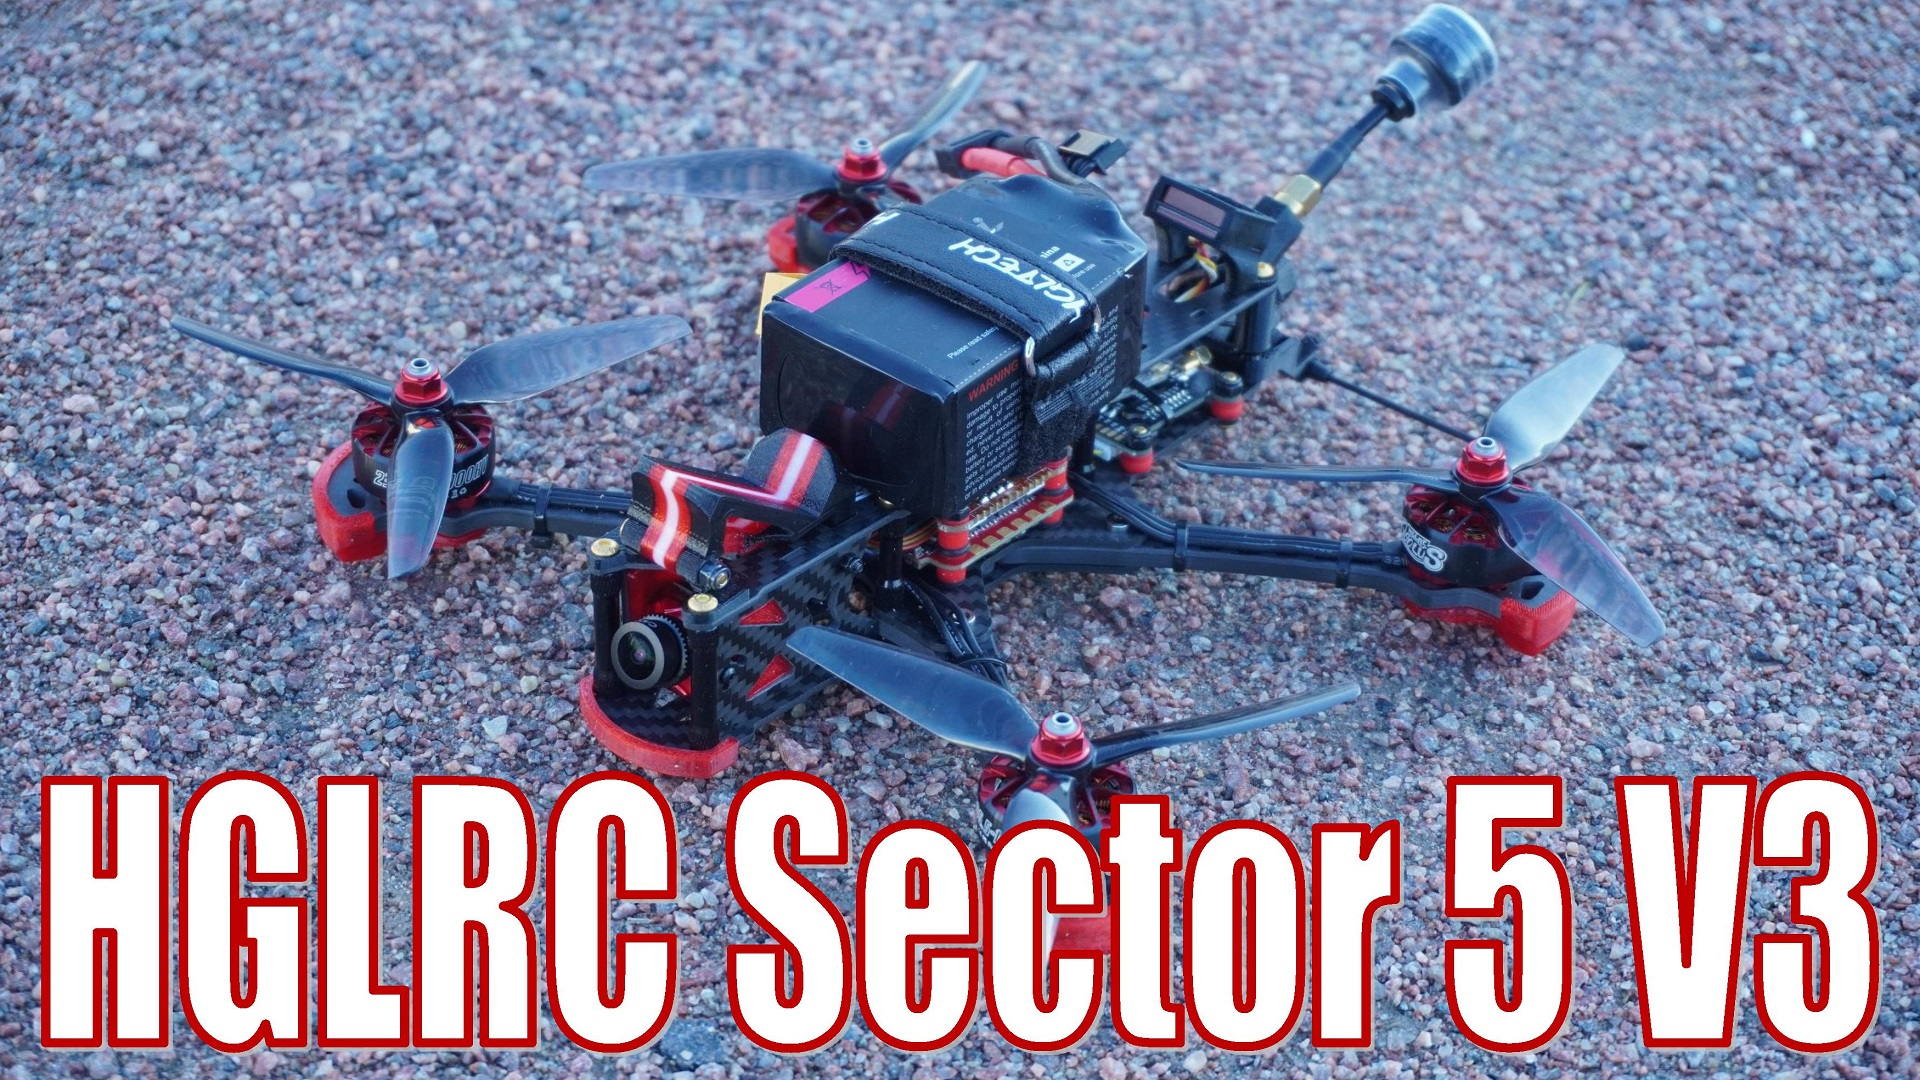 HGLRC Sector 5 V3 6S Freestyle FPV Racing Drone Caddx Ratel Version PNP/BNF Zeus F722 MT VTX 800MW 2306.5 1900KV Motor